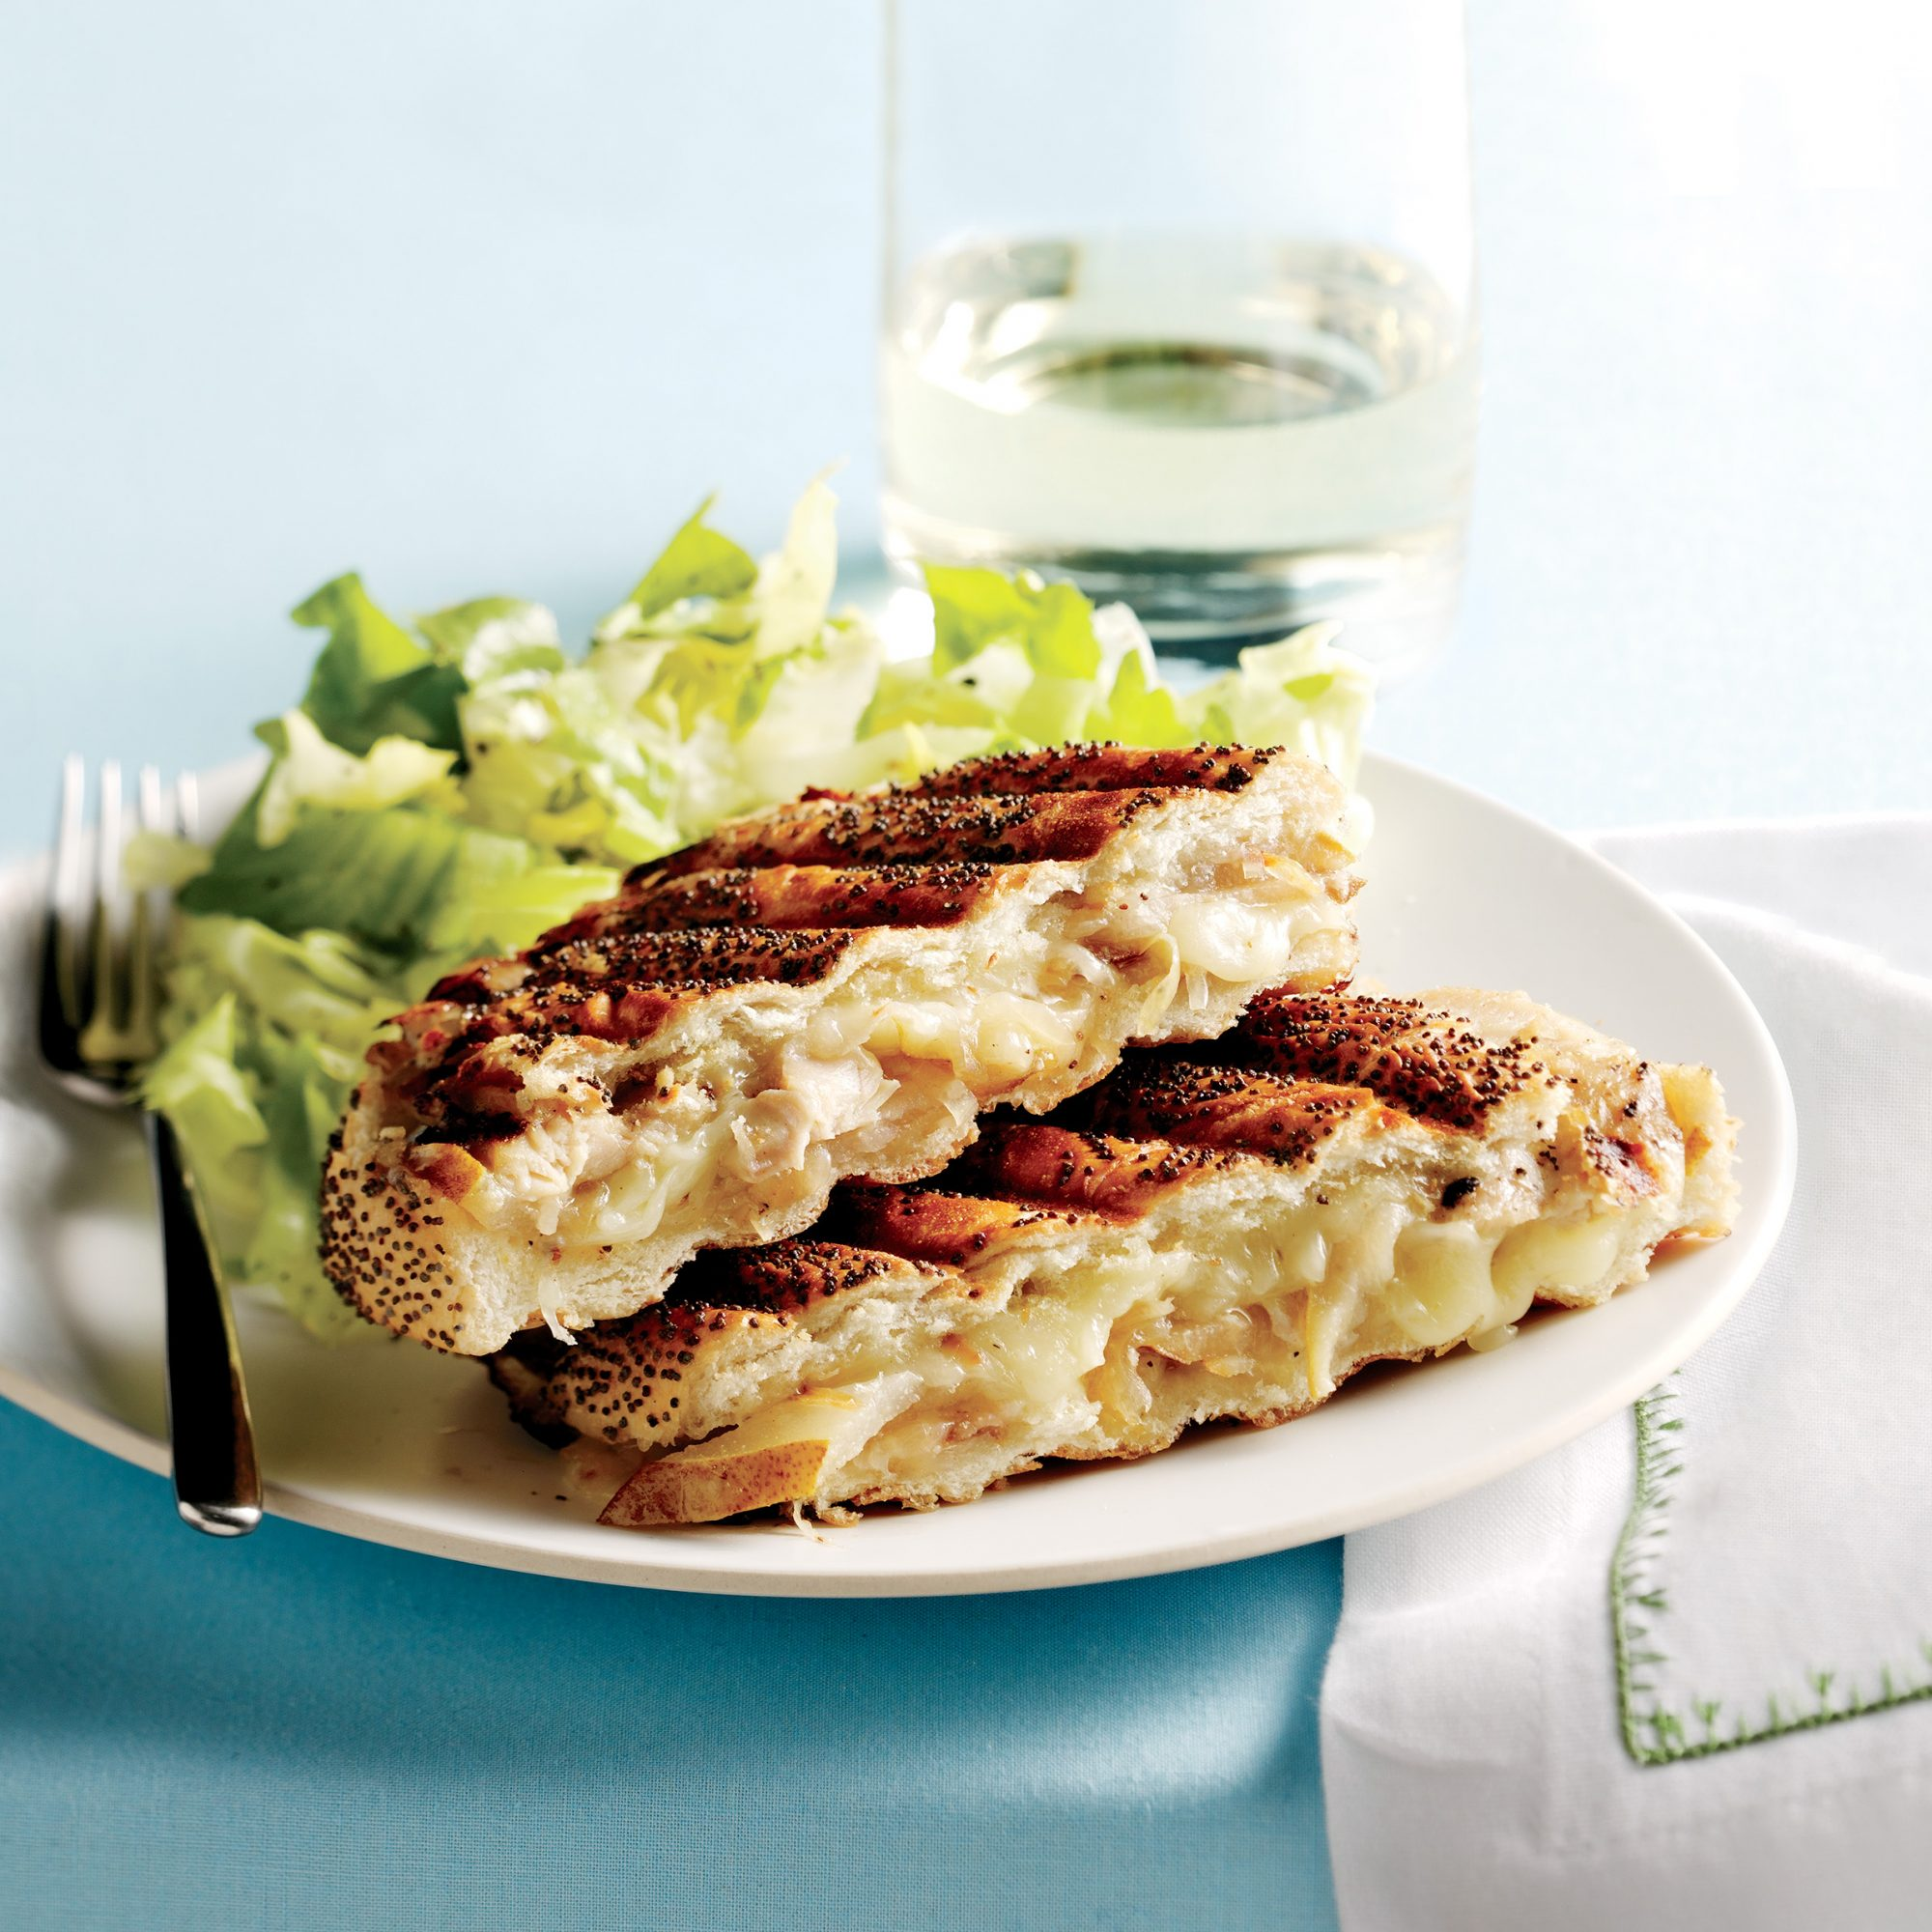 Chicken-and-Pear Panini with Shredded Escarole